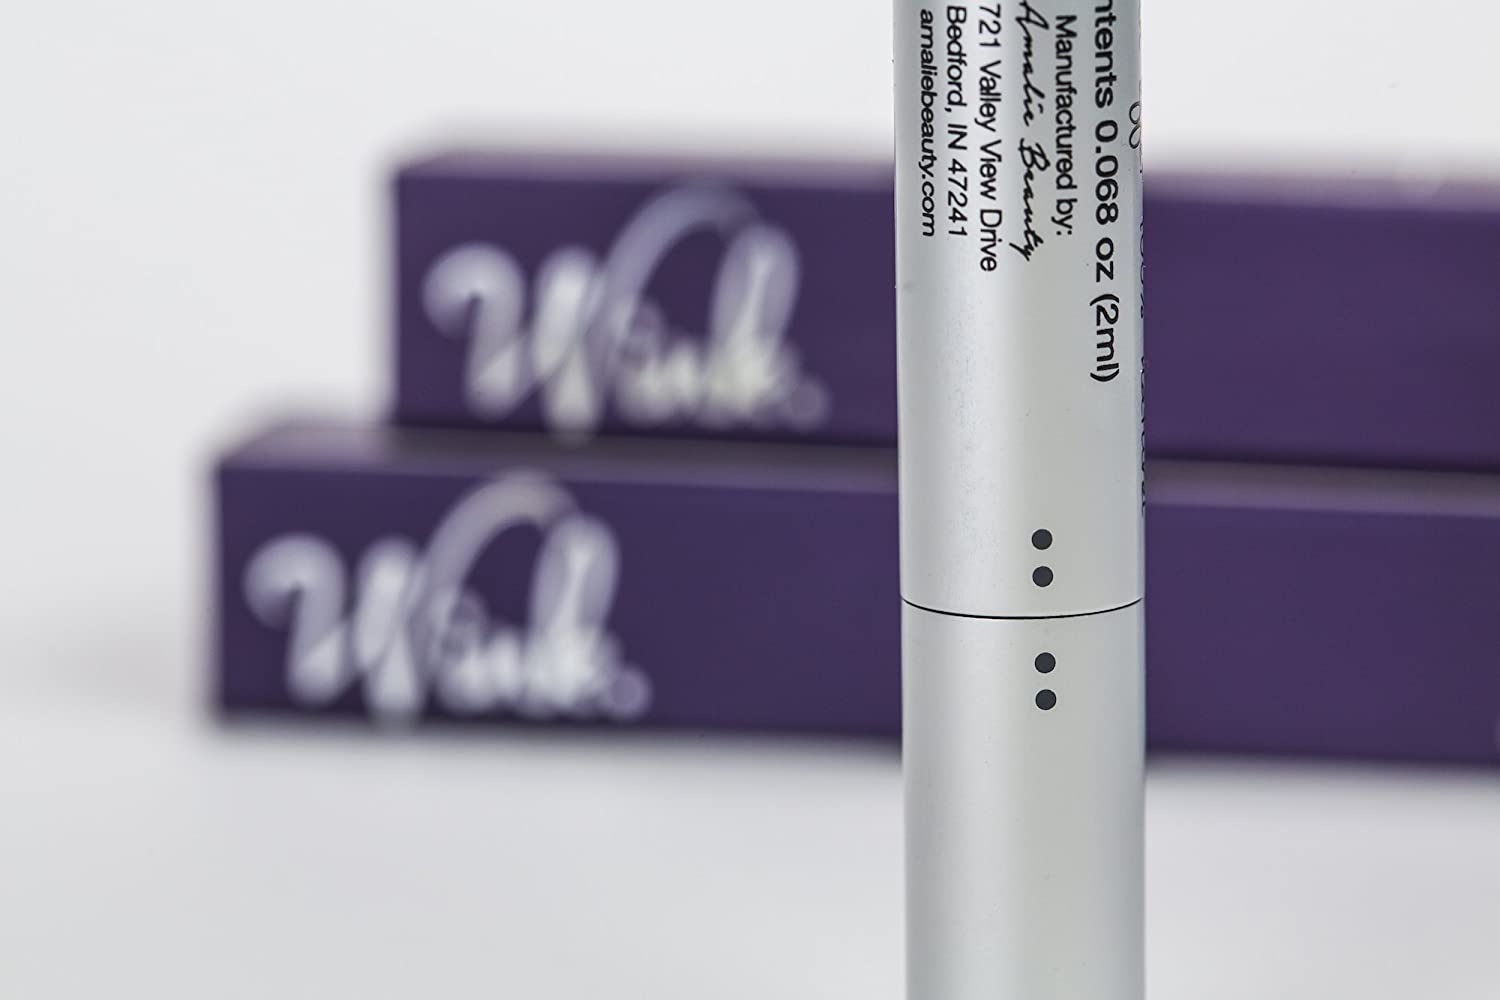 fc14b82f92d Amazon.com: Amalie Wink Lash & Brow Enhancing Oil Vegan, Hypoallergenic,  Cruelty-Free, Made In USA: Beauty